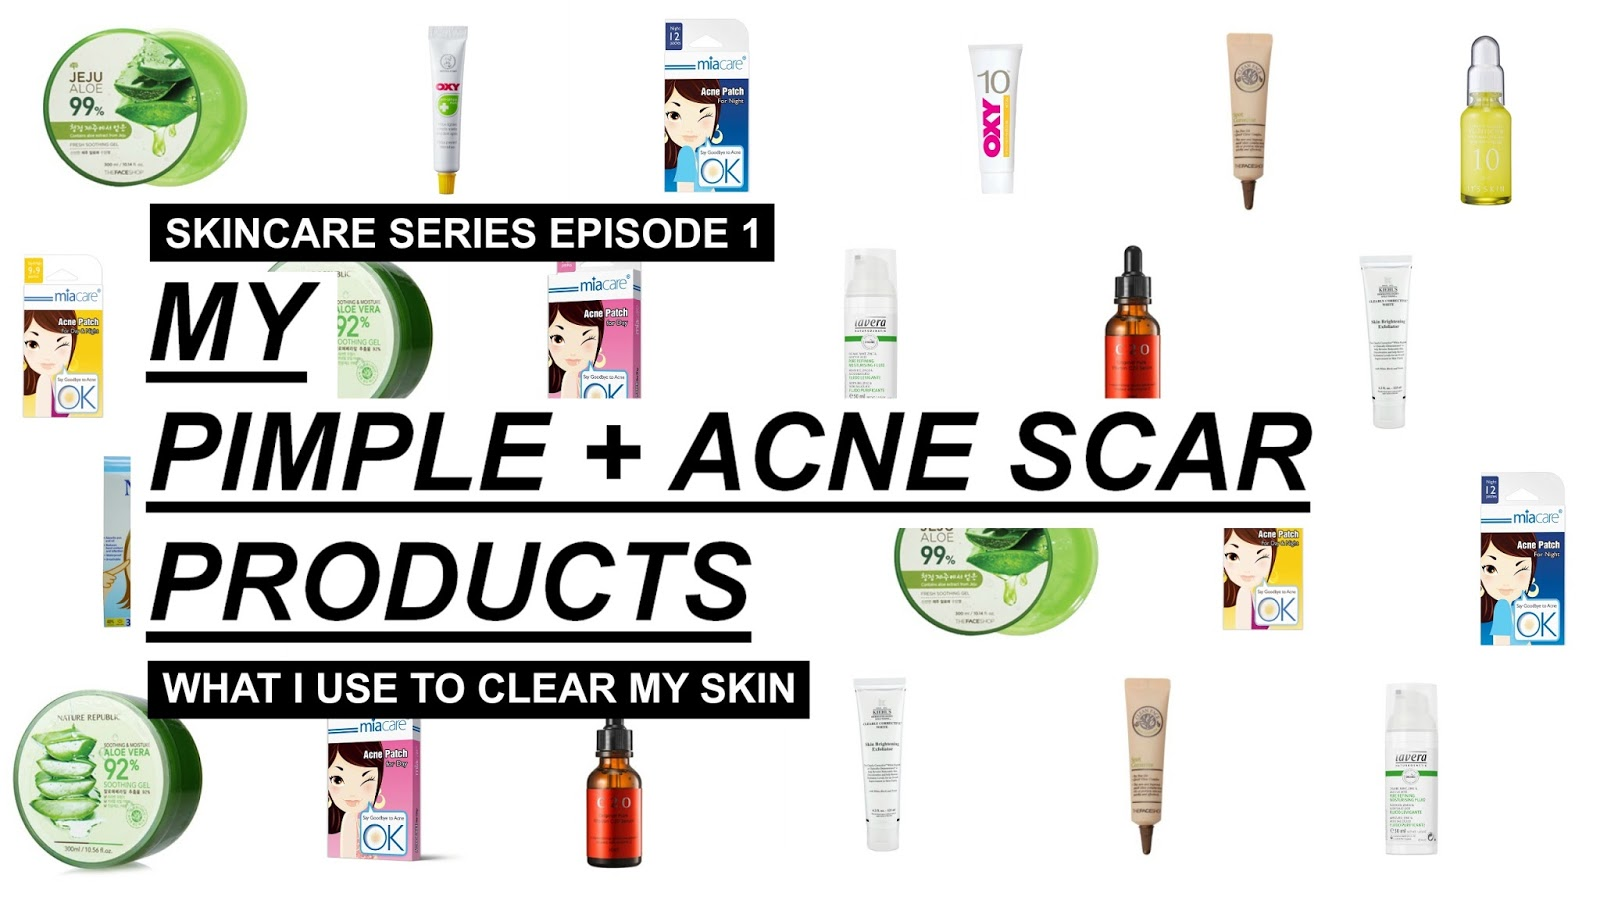 My Pimple Acne Scar Products Fishmeatdie Dr Pure Serum Cream Care I Was Looking Through Files The Other Day And Came Across An Old Folder With Some Of Photos Its Actually Been A While Since Last Saw